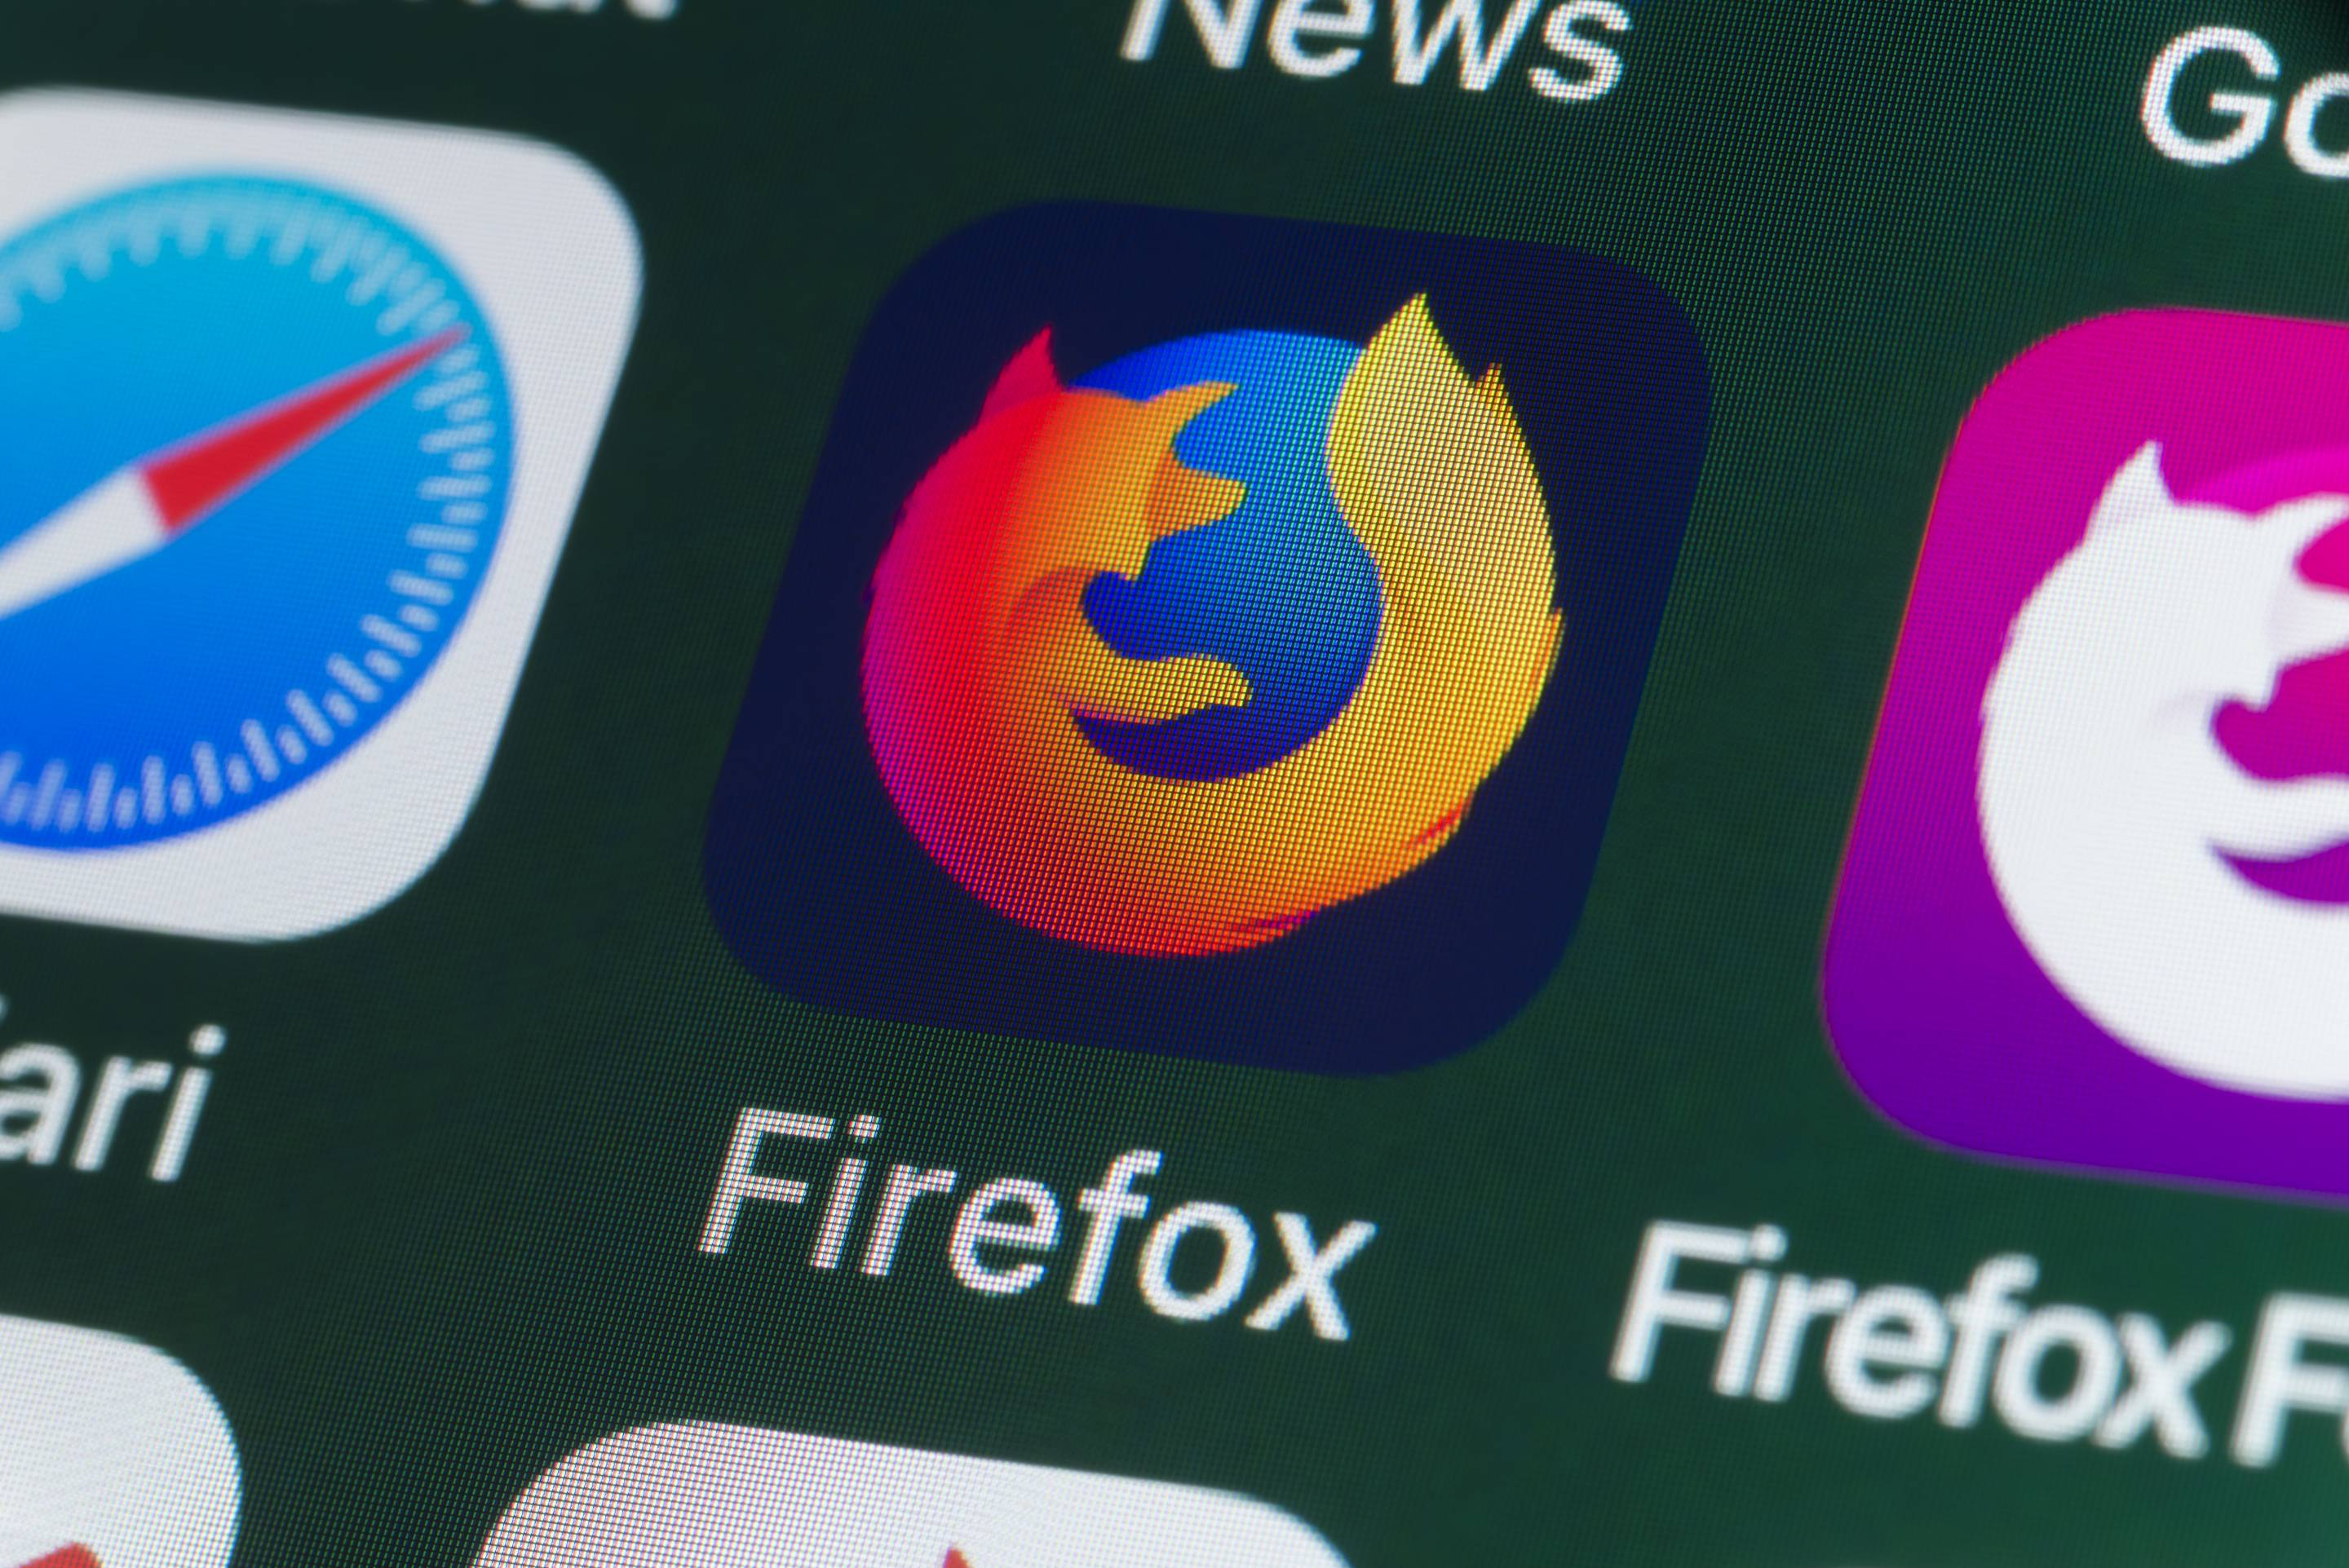 Firefox' 66th update suspended due to a so-called critical error